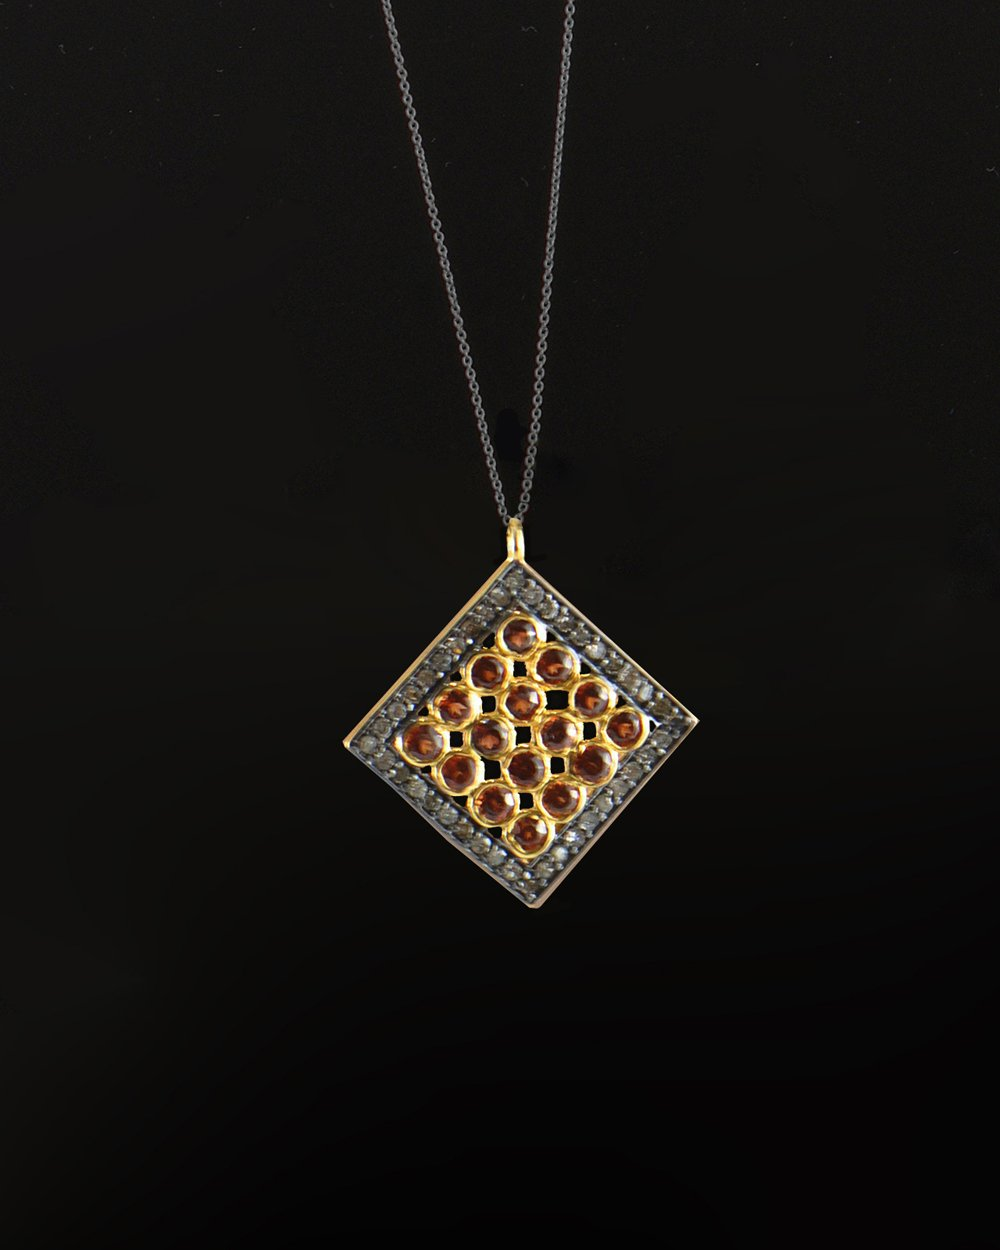 Rubies and Diamonds Necklace in Gold Vermeil